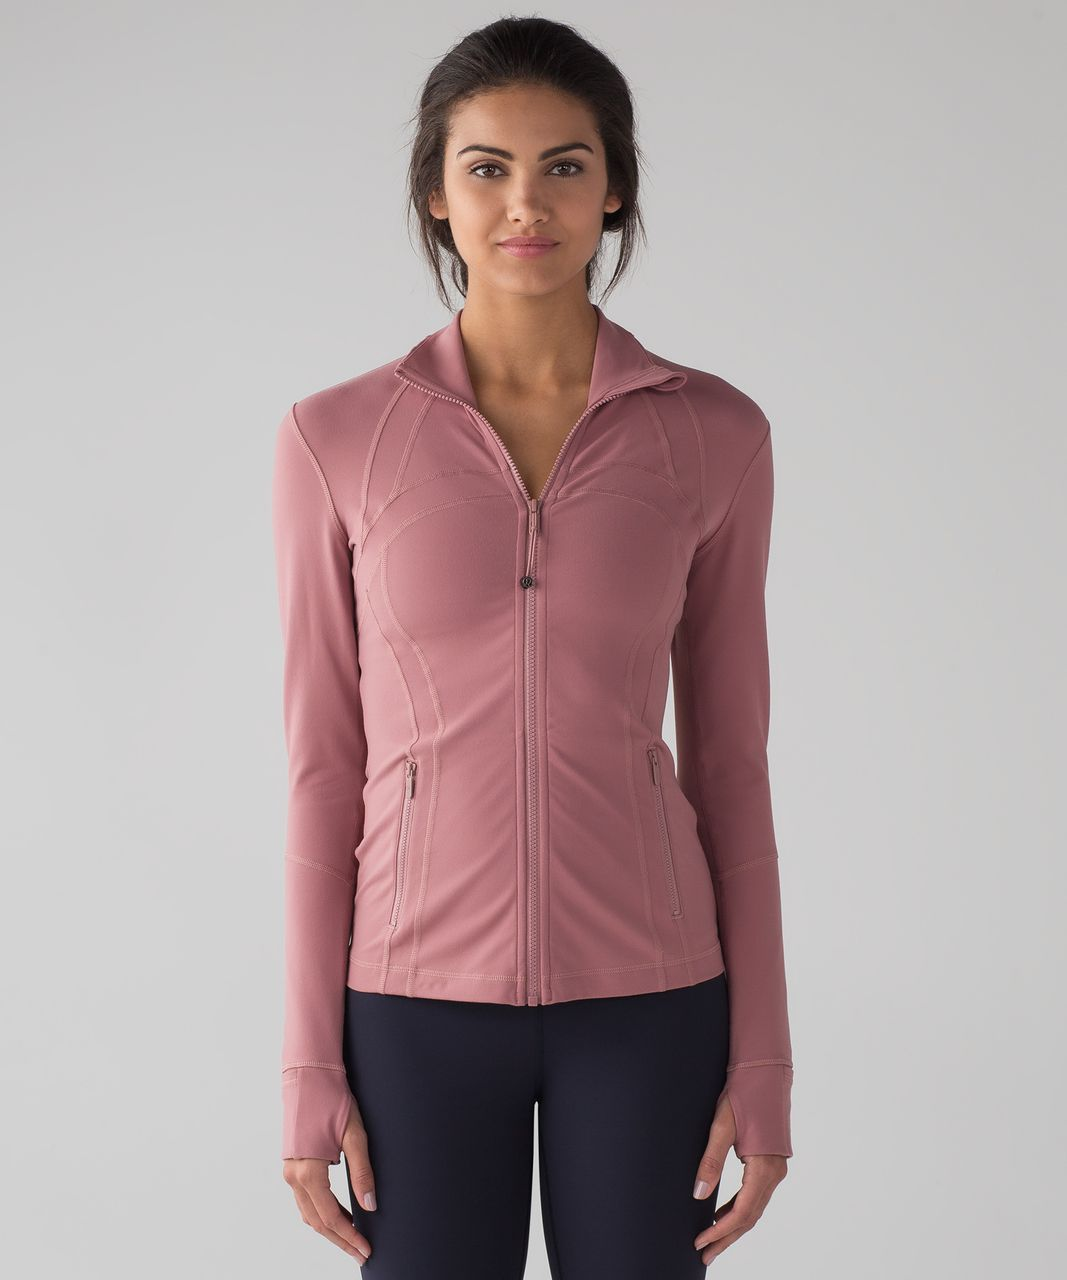 Lululemon Define Jacket - Quicksand (First Release)